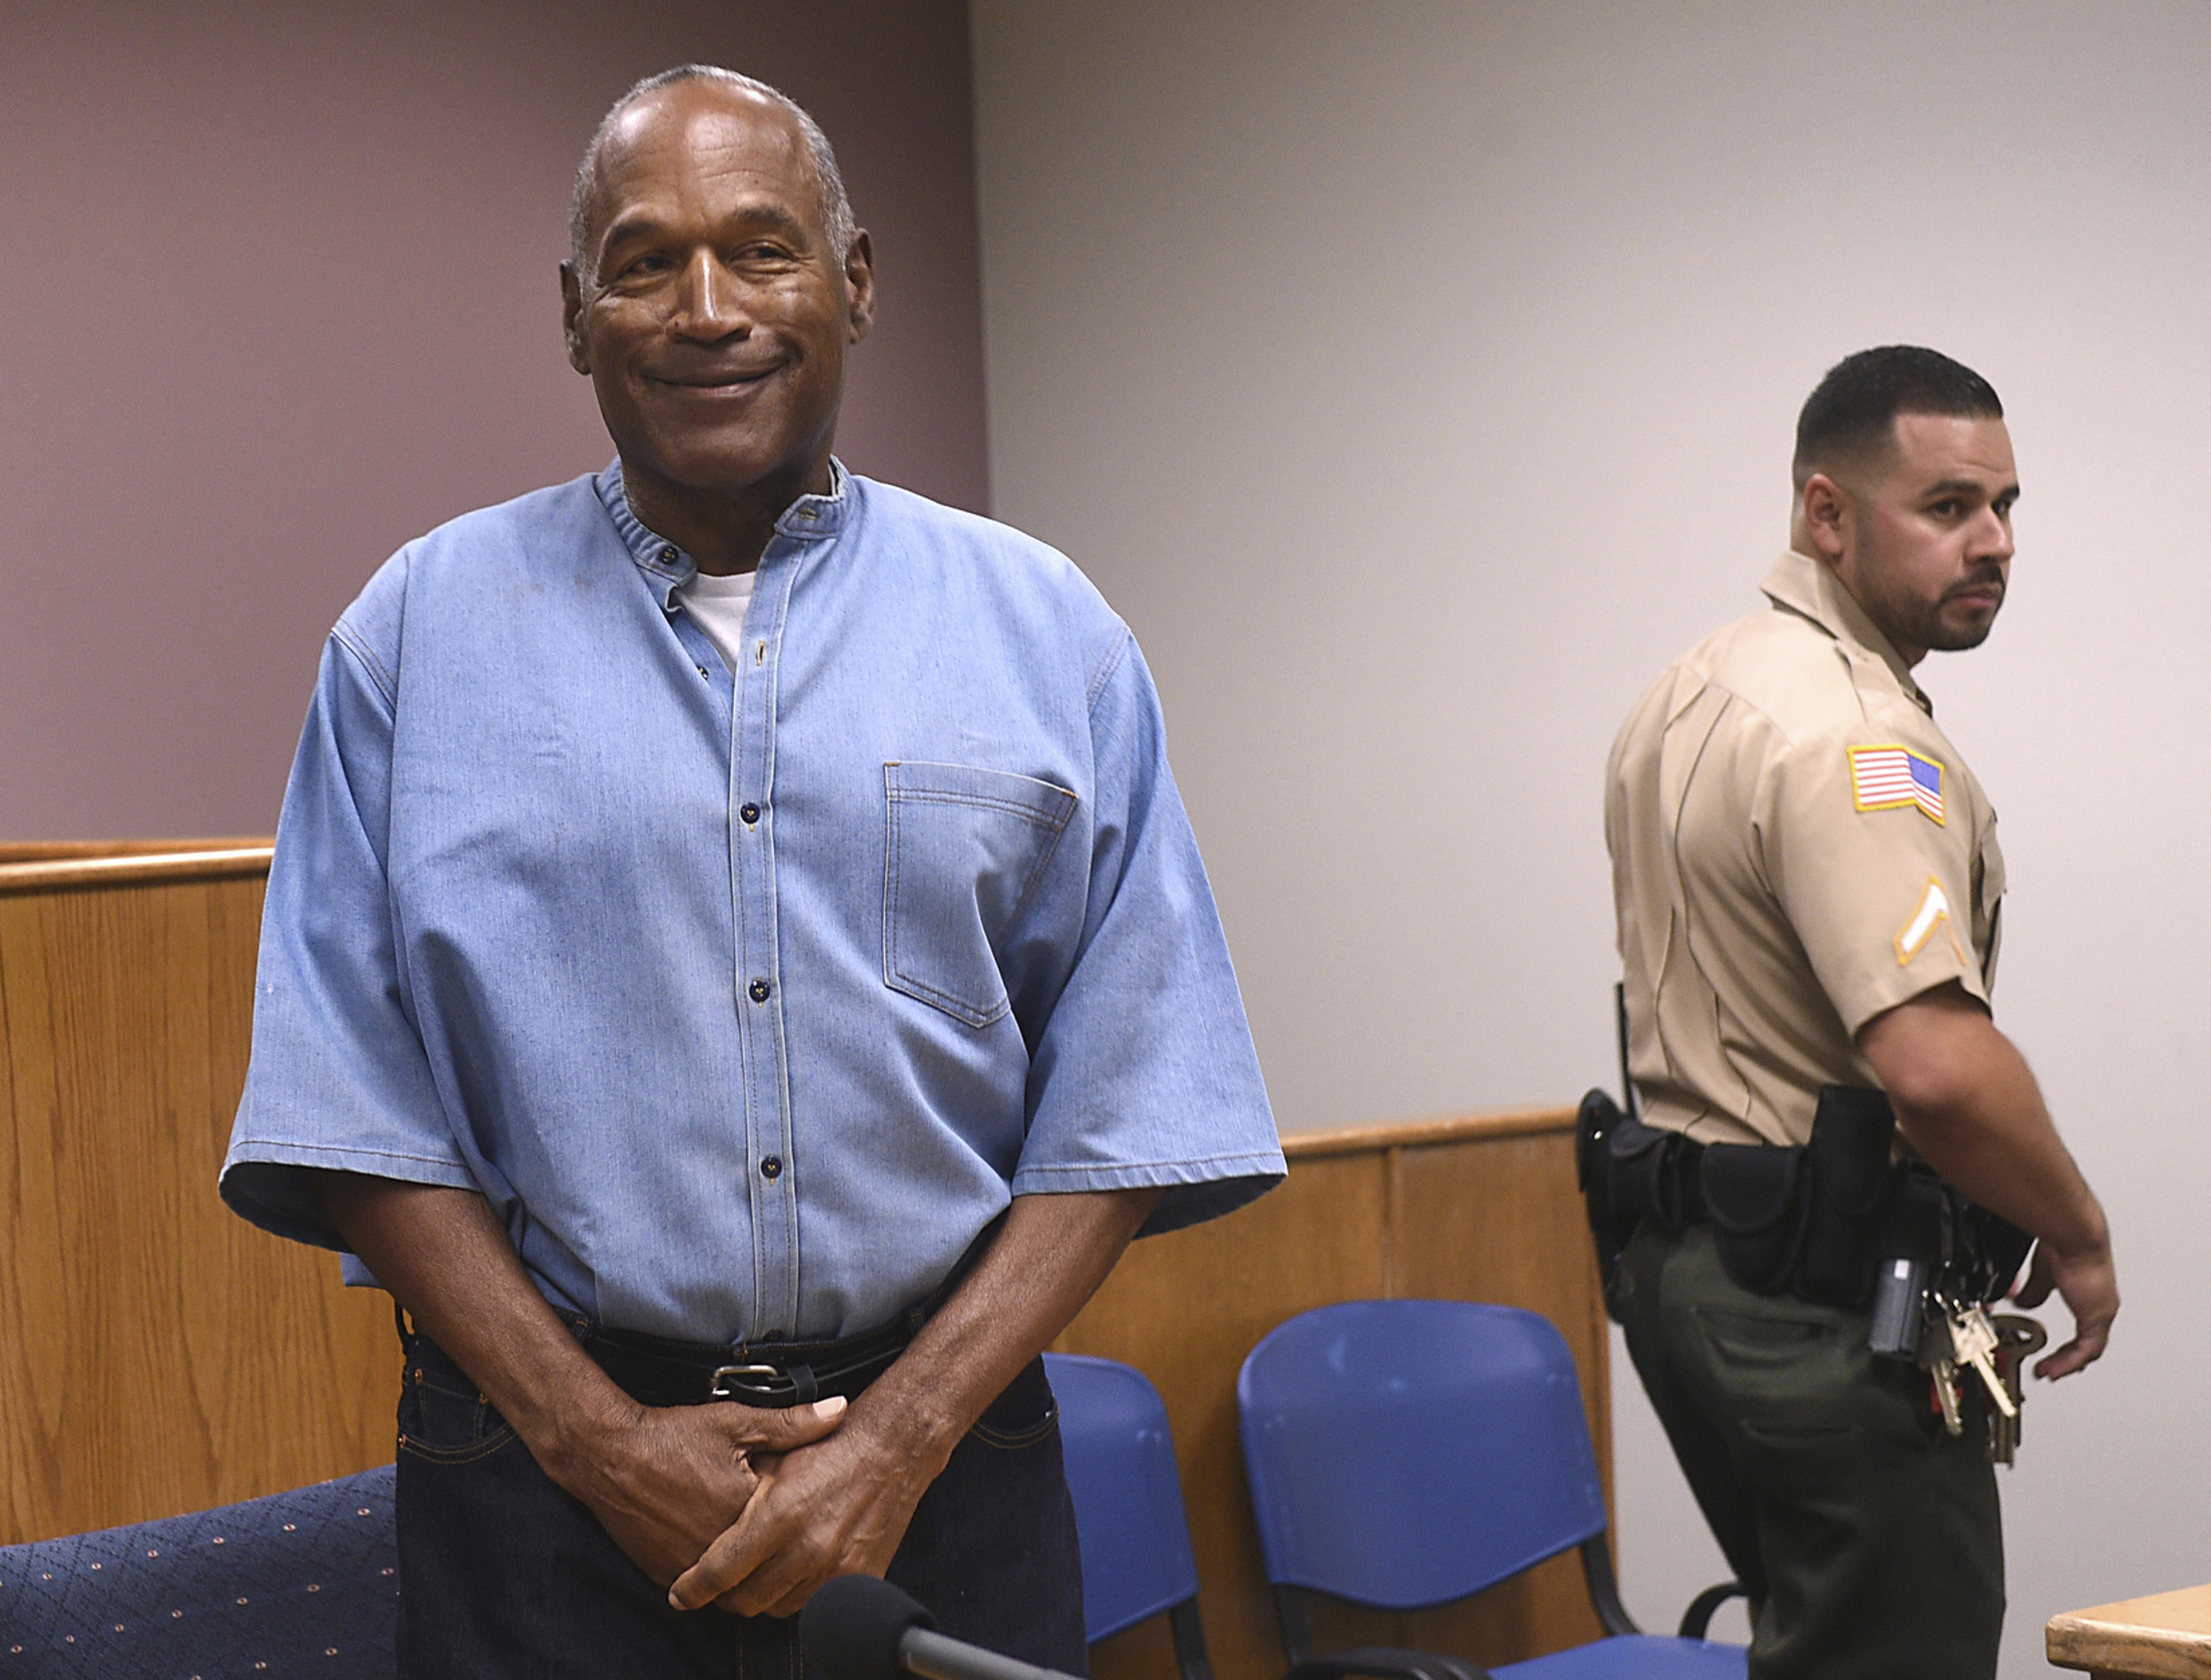 FILE - In this July 20, 2017, file photo, former NFL football star O.J. Simpson enters for his parole hearing at the Lovelock Correctional Center in Lovelock, Nev. A Nevada prison official said early Sunday, Oct. 1, 2017, O.J. Simpson, the former football legend and Hollywood star, has been released from a Nevada prison in Lovelock after serving nine years for armed robbery.  (Jason Bean/The Reno Gazette-Journal via AP, Pool, File)